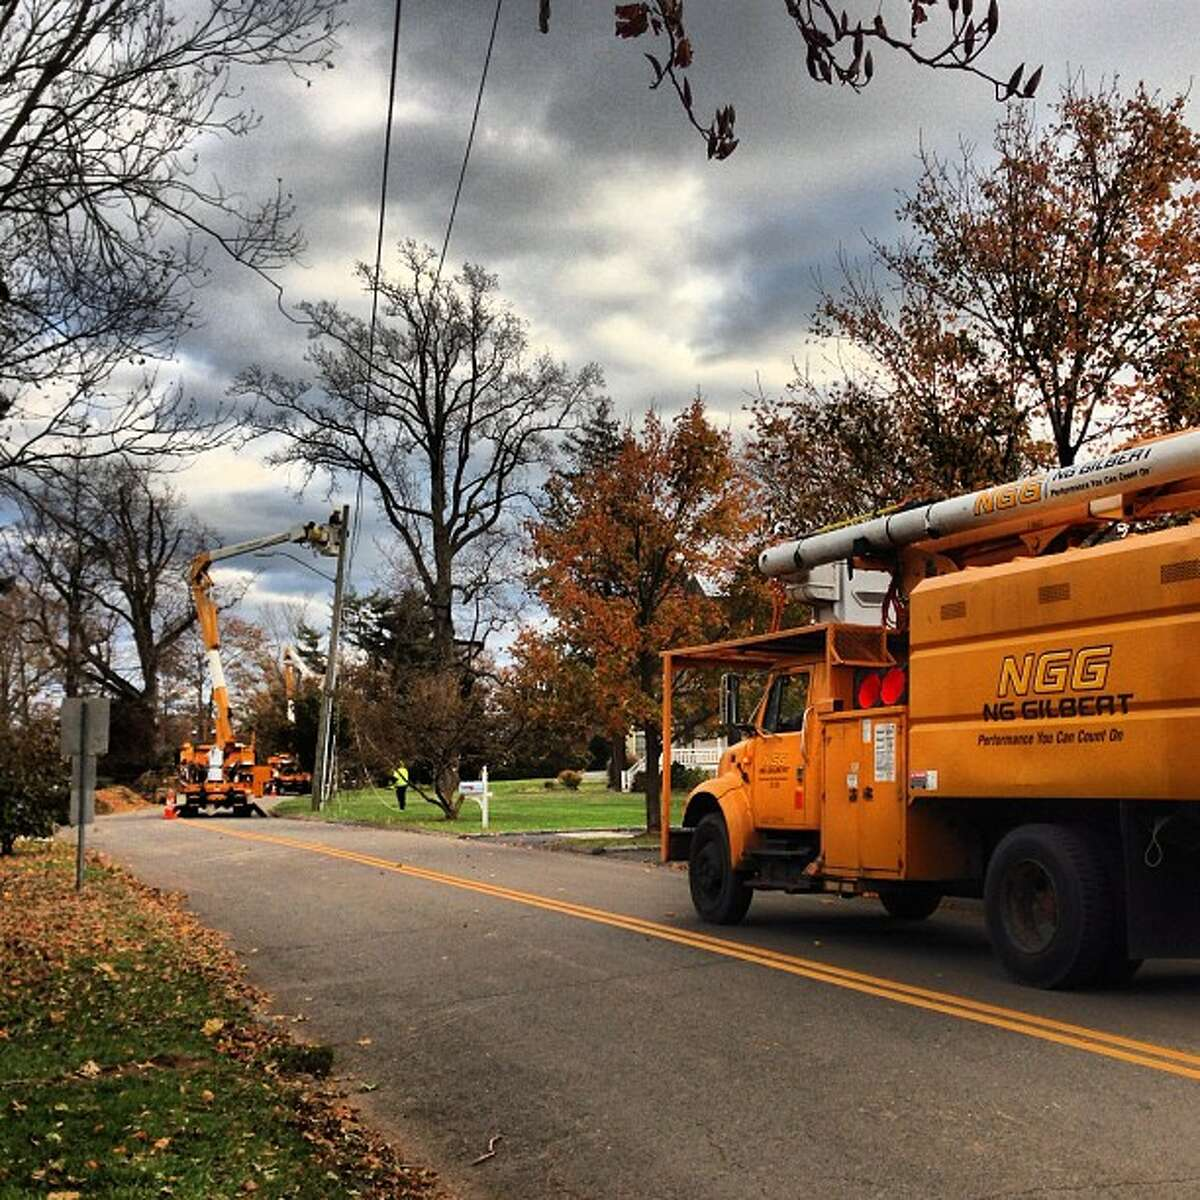 A crew from Indiana works on trees and lines simultaneously in Stamford Saturday. (Photo by Kara Billhardt)